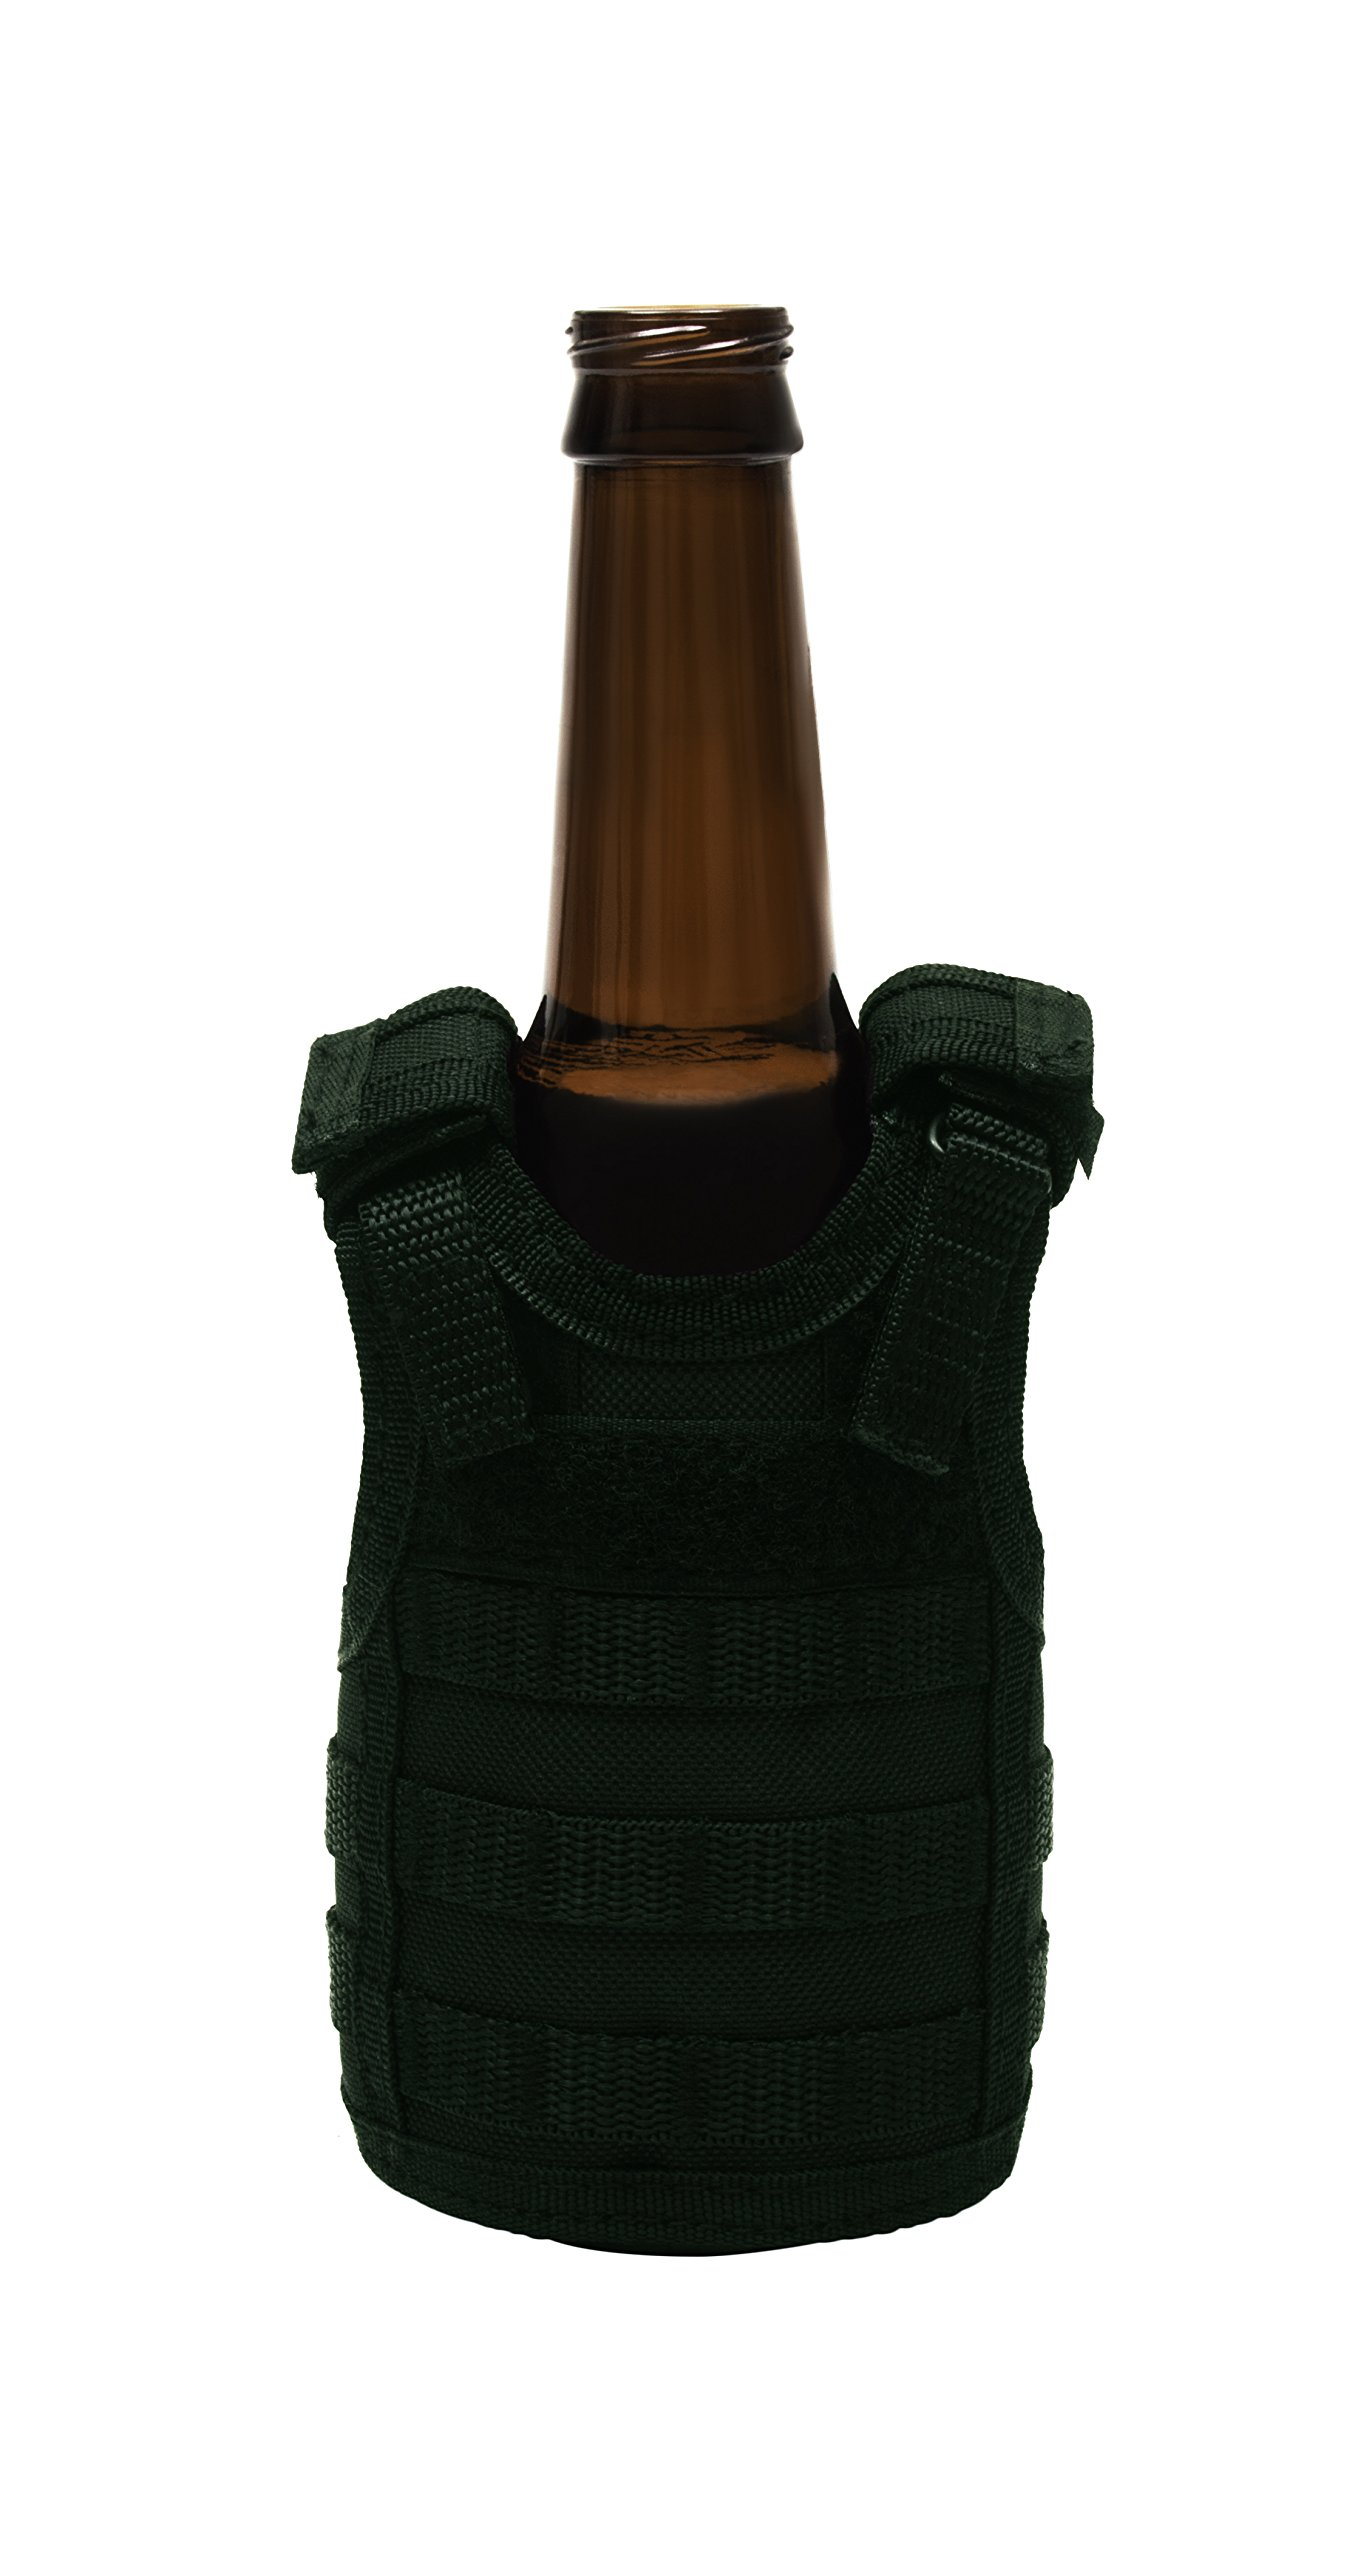 Frontier Tactical Gear Tactical Premium Beer Military Molle Mini Miniature Vests Beverage Cooler for 12oz or 16oz beverages cans AND bottles - adjustable shoulder straps - OD Green by Frontier Tactical Gear